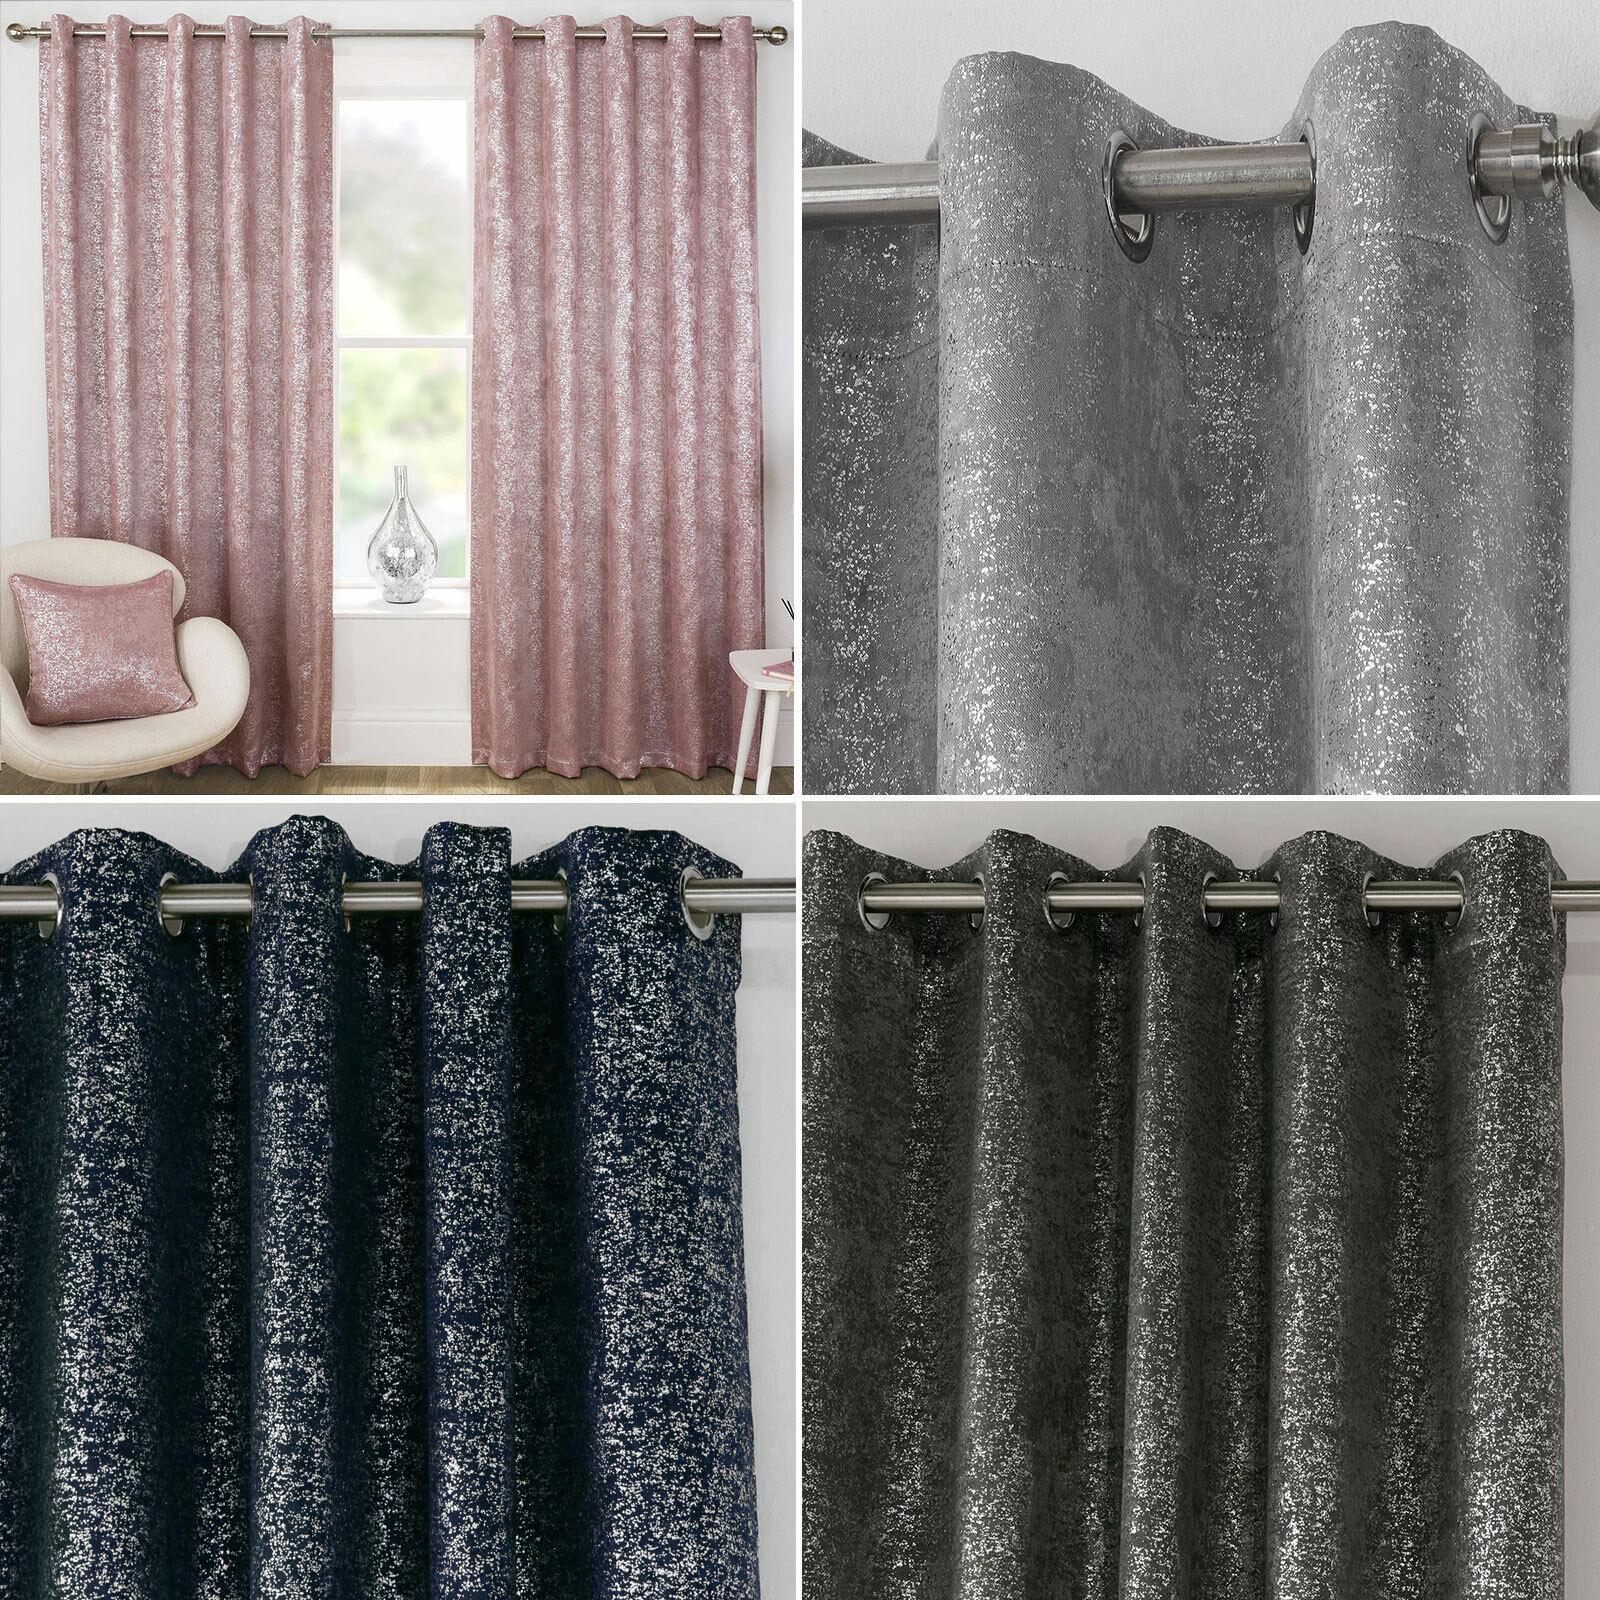 curtains - Pair of Designer Metallic Sparkle Bling Thermal Blockout Eyelet Ring Curtains